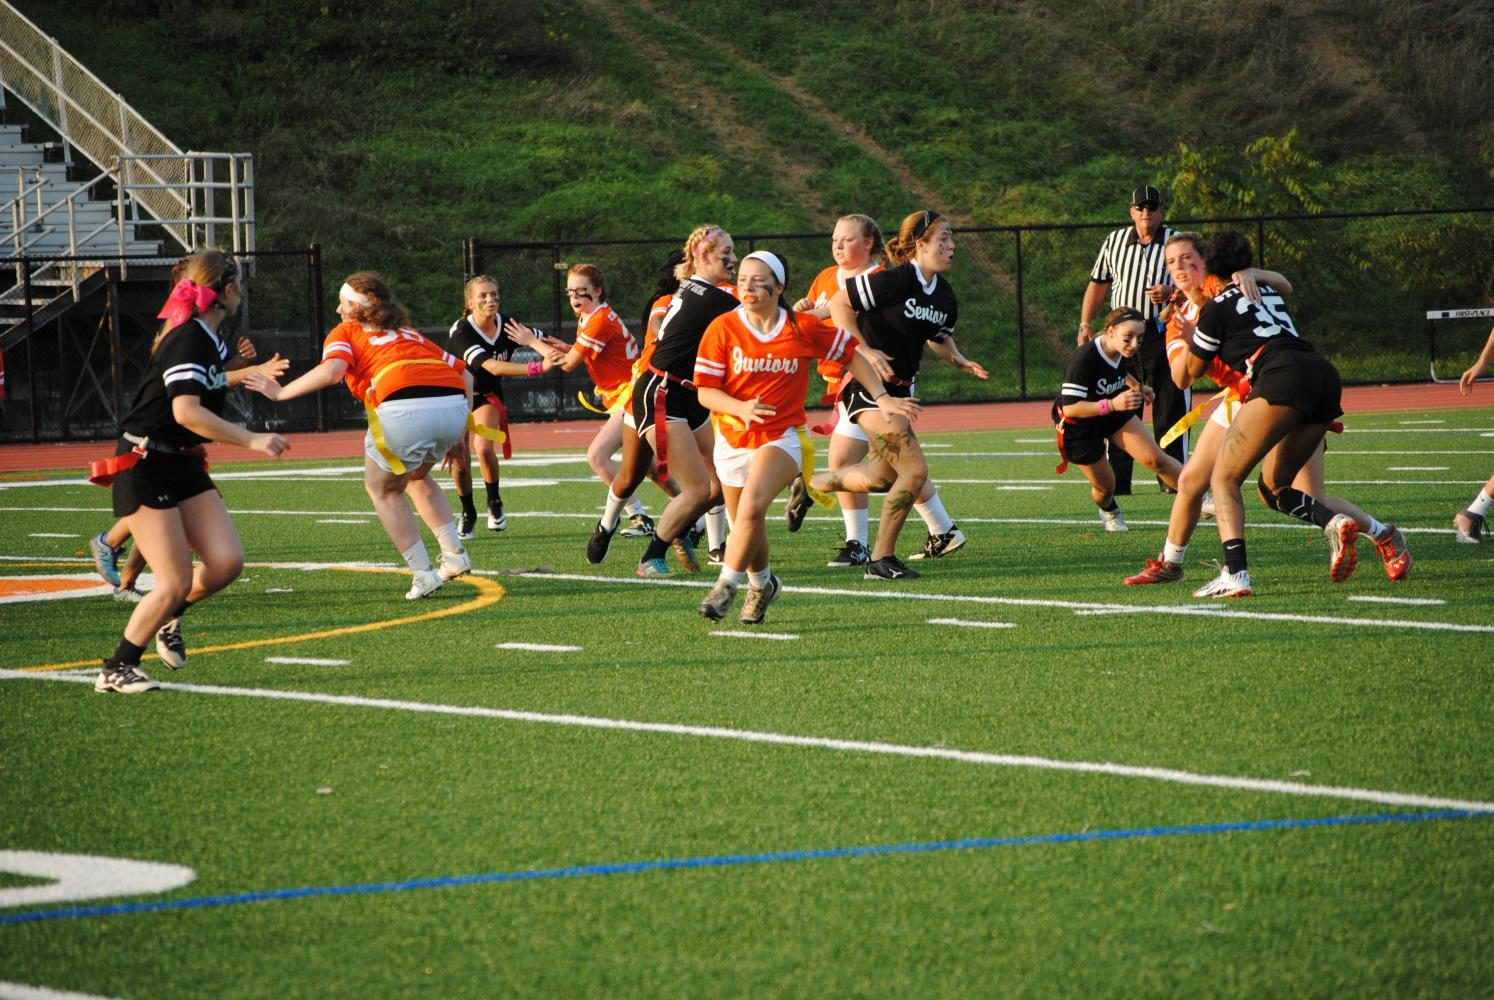 Senior+and+Junior+powderpuff+players+duke+it+out+on+the+field+on+Sunday%2C+Sept.+17.+Photo+by%3A+Amber+Schnupp